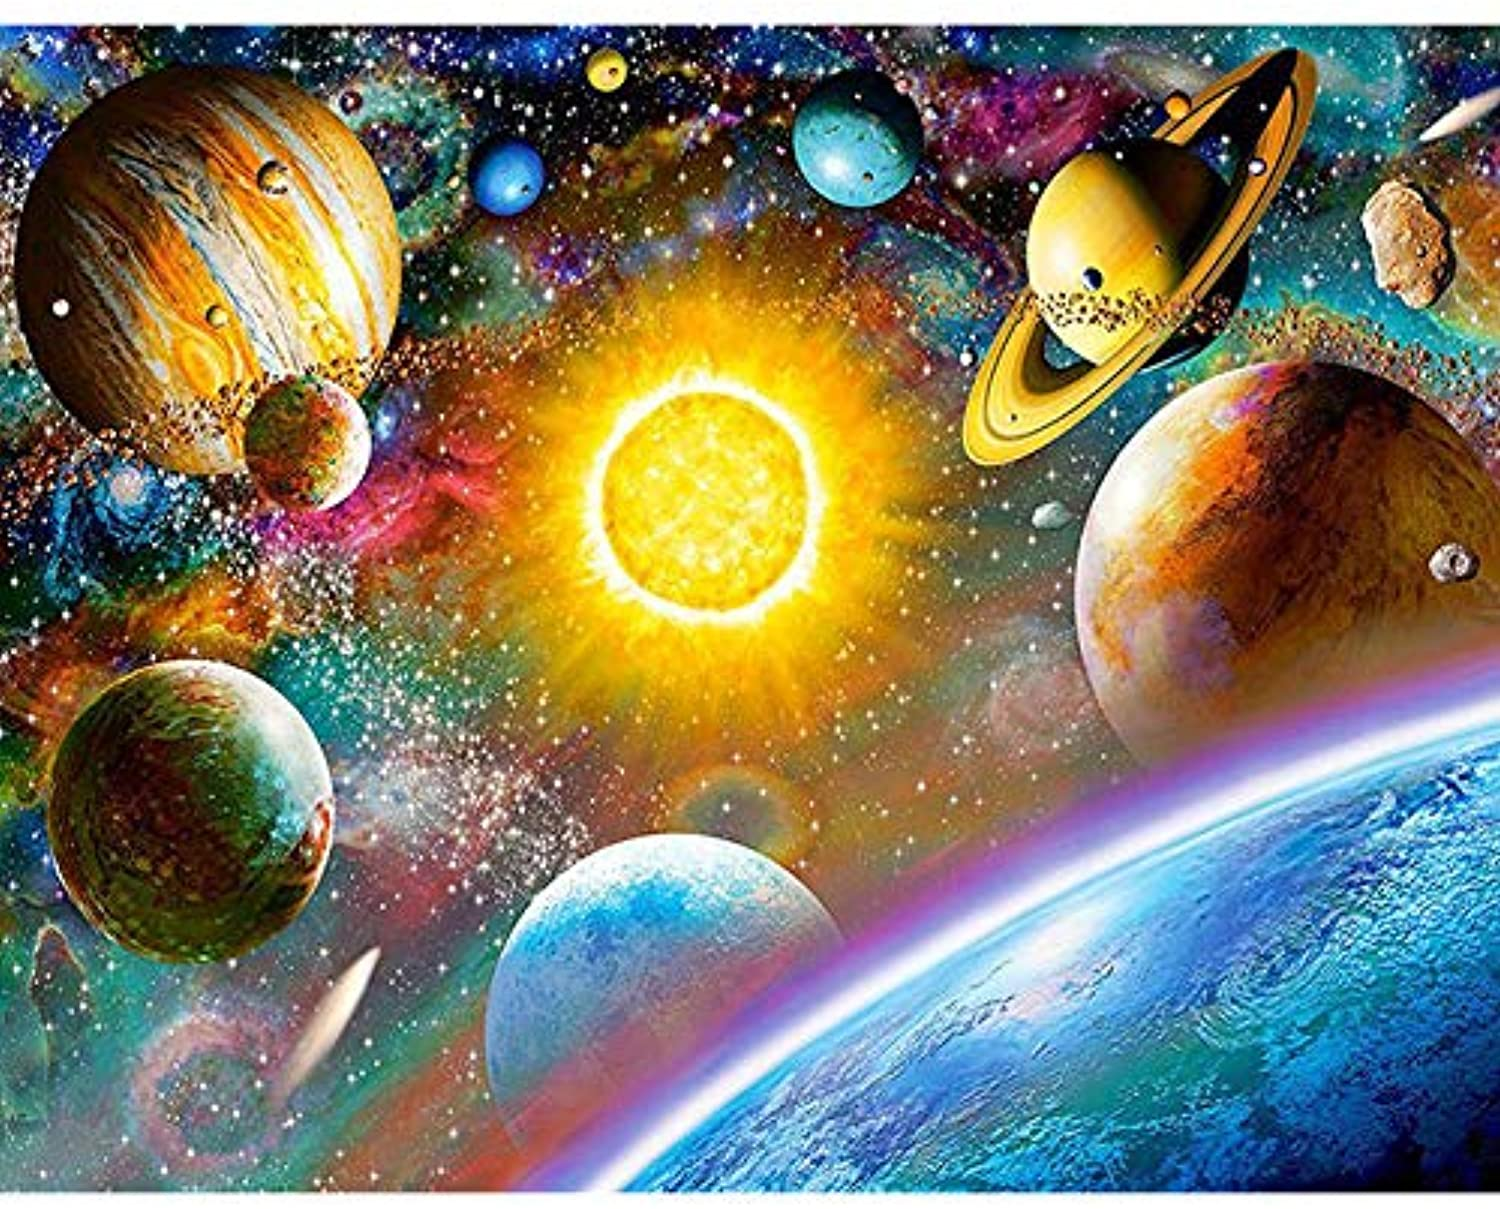 Diy Oil Painting Paint By Number Kit For Adult Kids - Painted Outer Space Planet,16X20 Inch